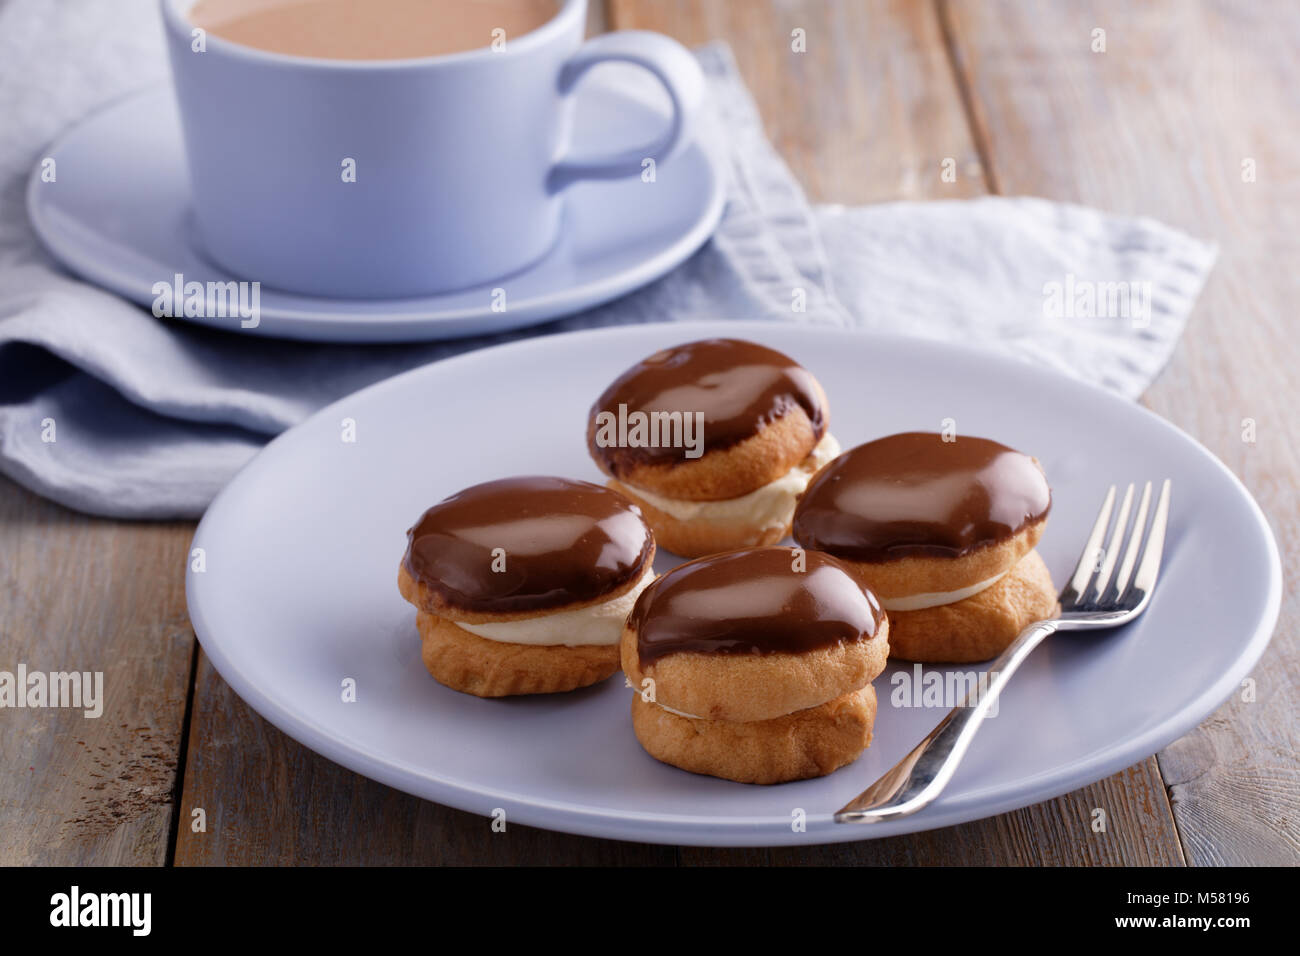 French cakes covered with chocolate on a rustic table - Stock Image